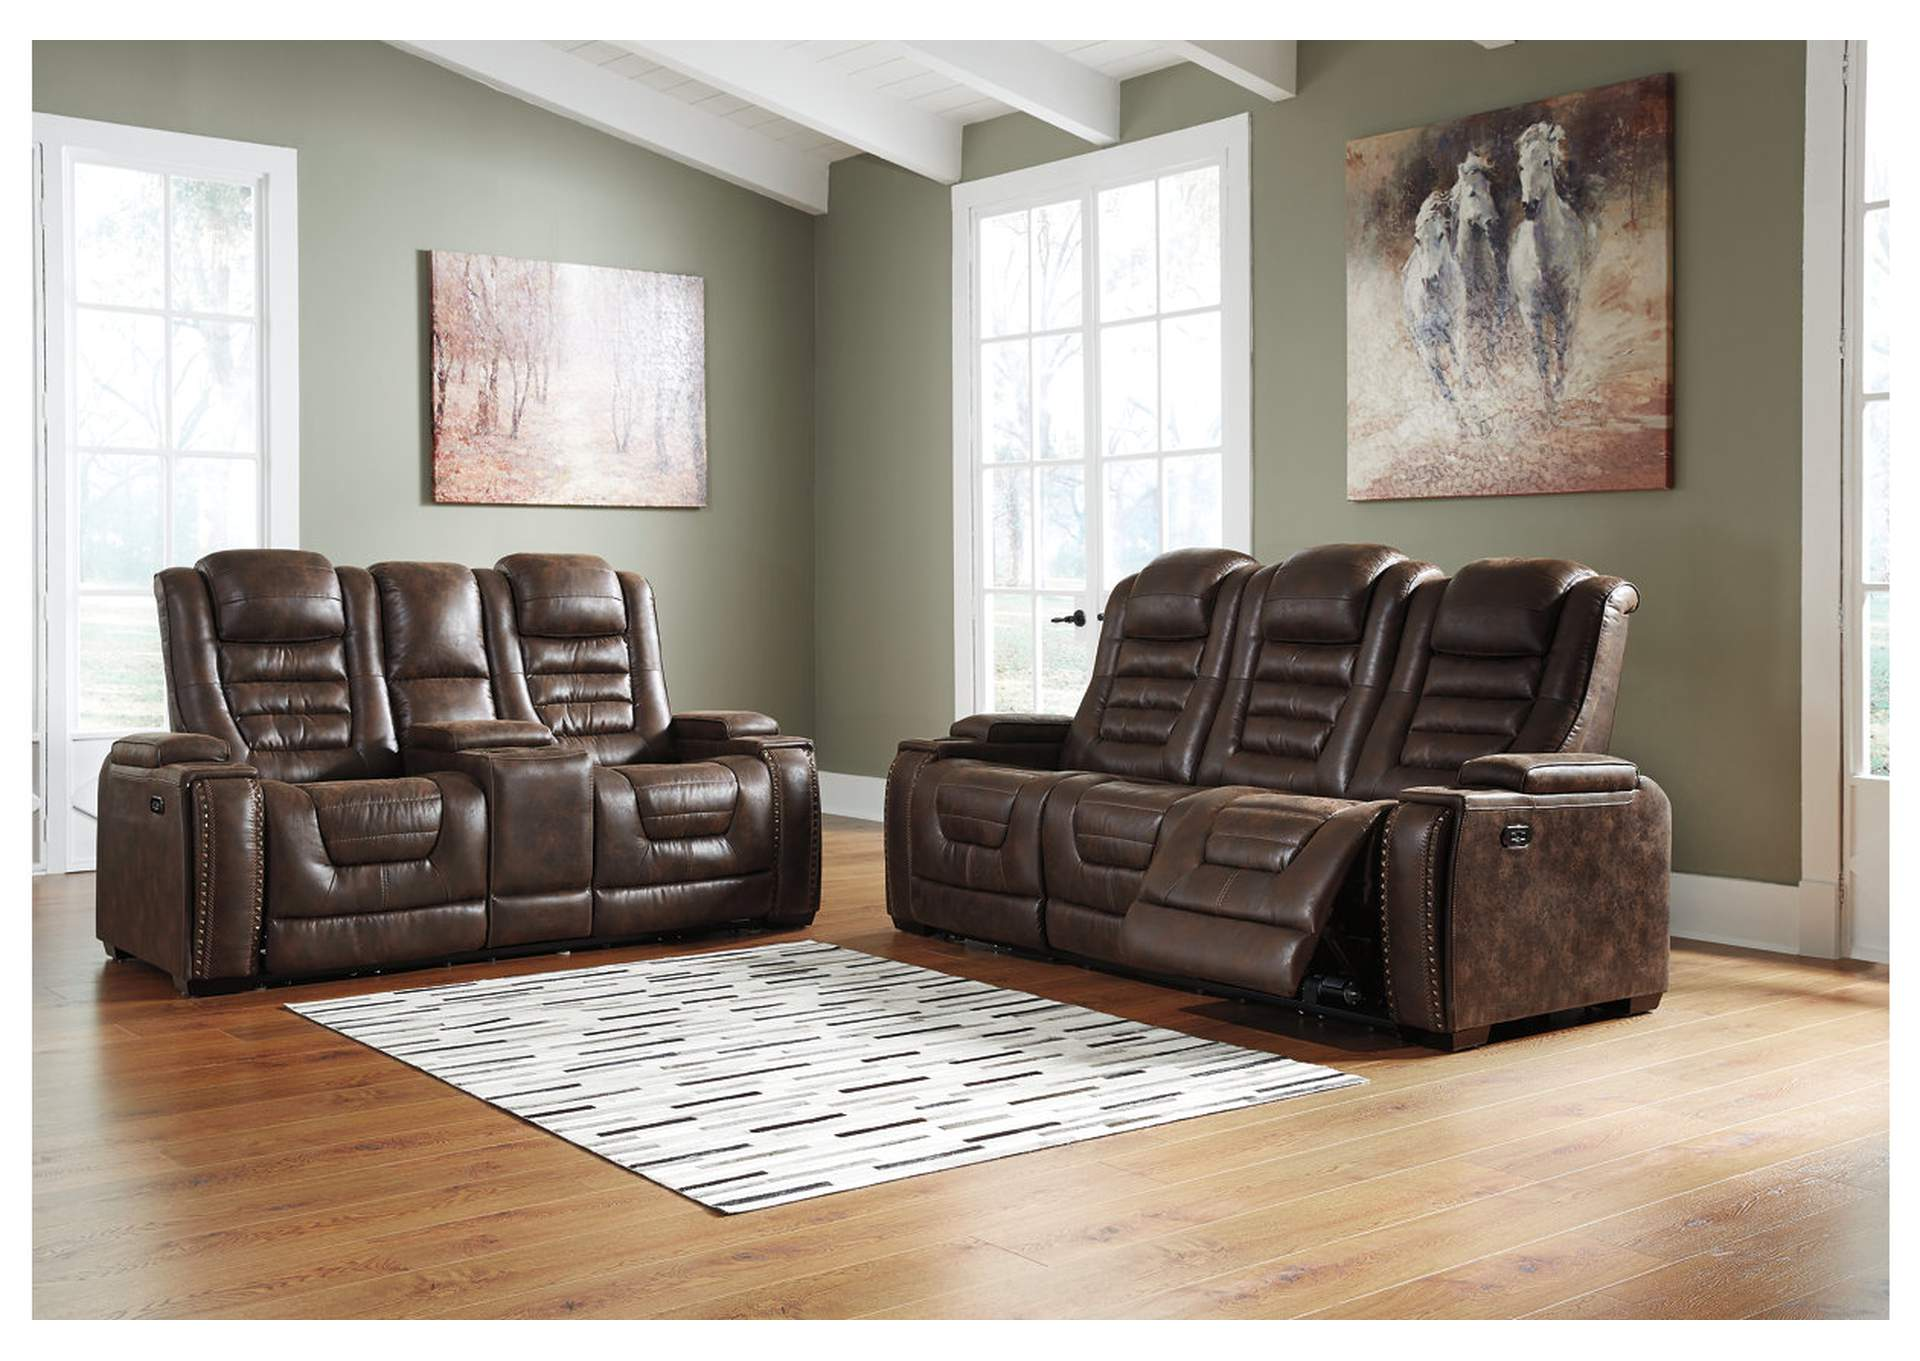 Game Zone Power Reclining Sofa & Loveseat w/Adjustable Headrest,Signature Design By Ashley